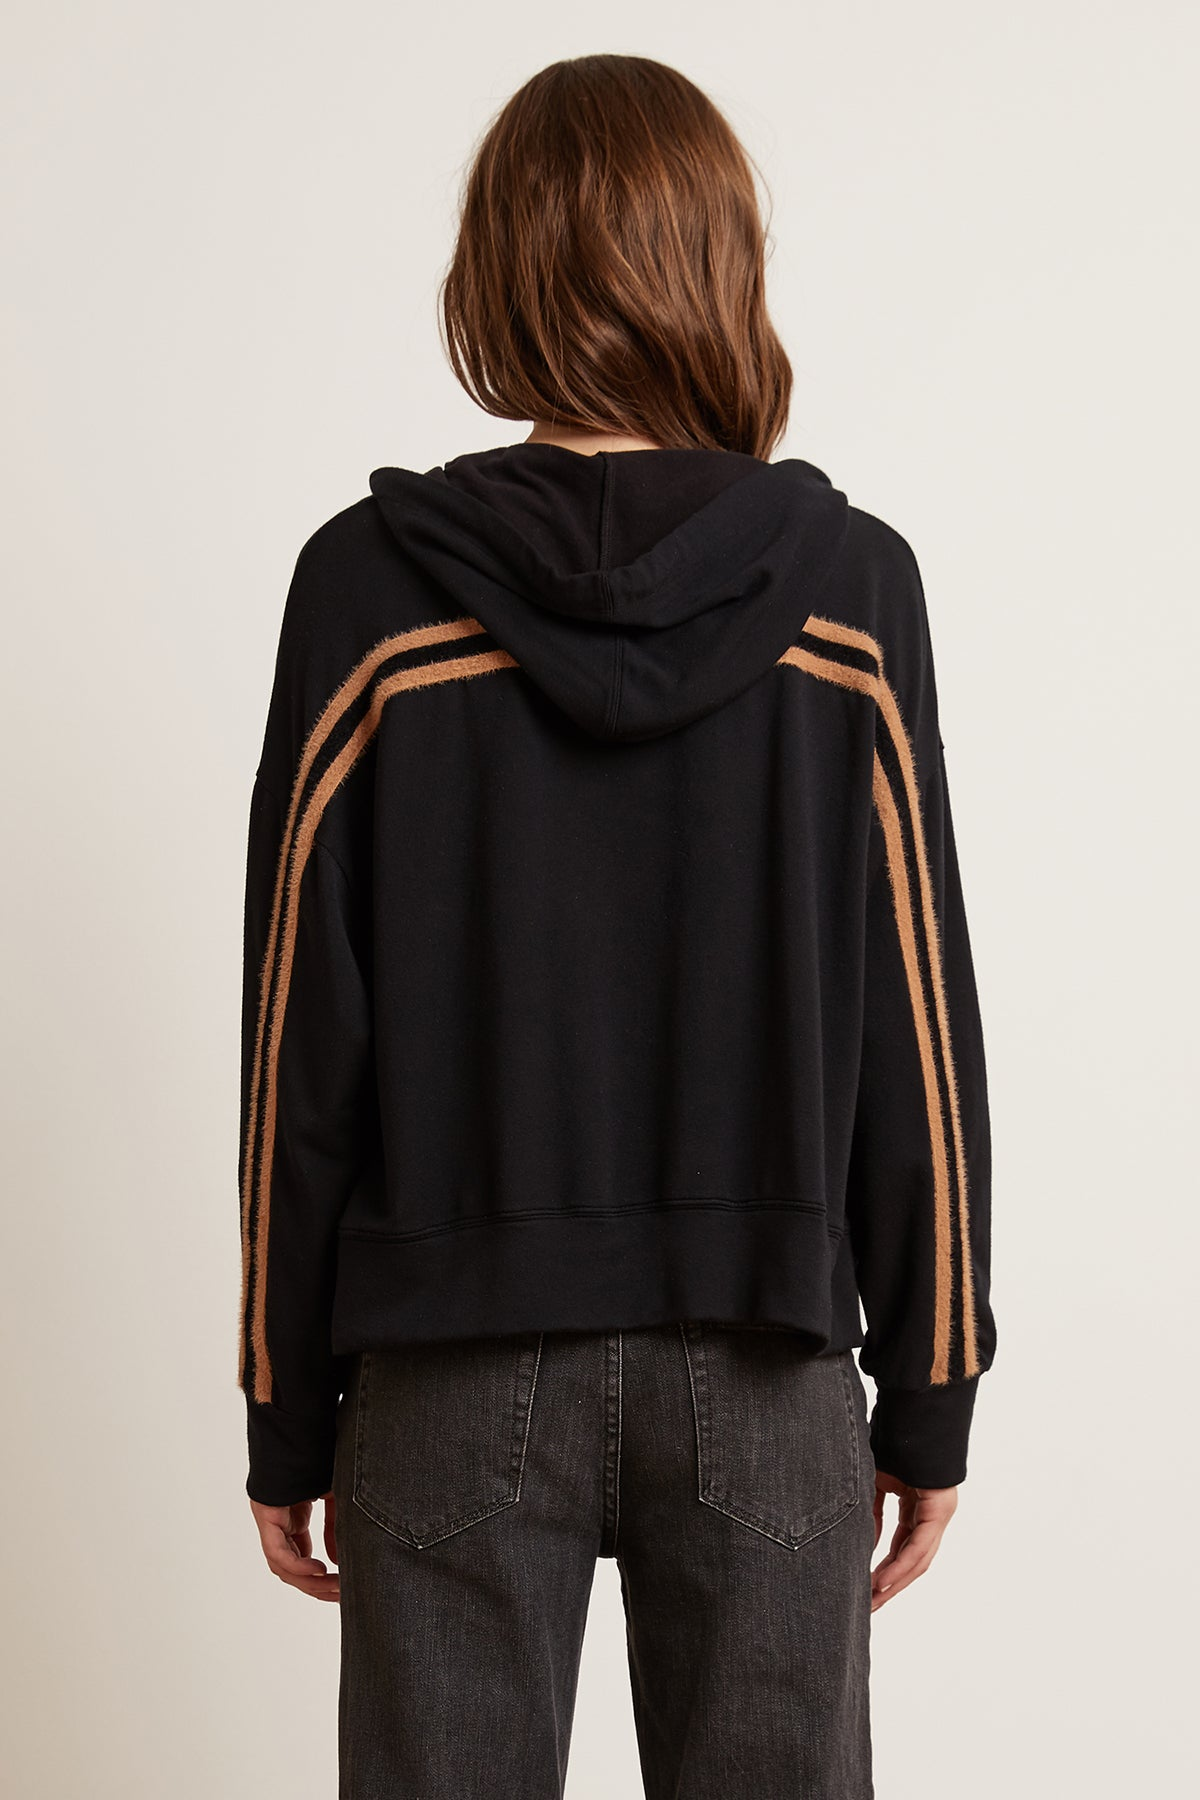 REMY LUXE FLEECE FEATHERED STRIPE HOODIE